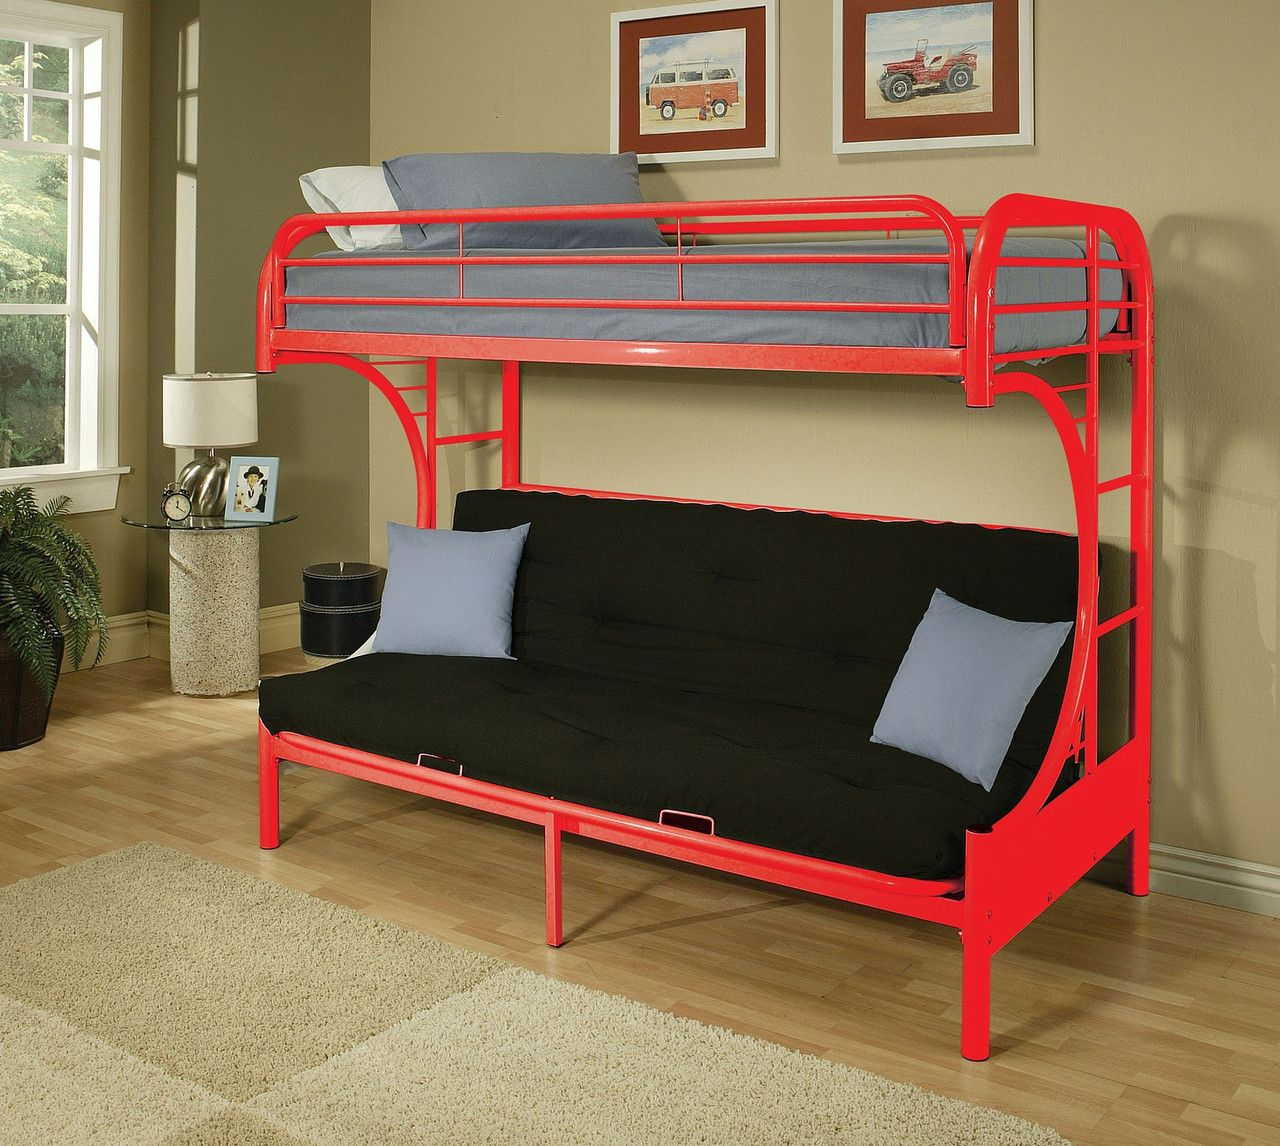 Eclipse Red Metal Youth T F Futon Bunk Bed 02091w Rd For 230 Features